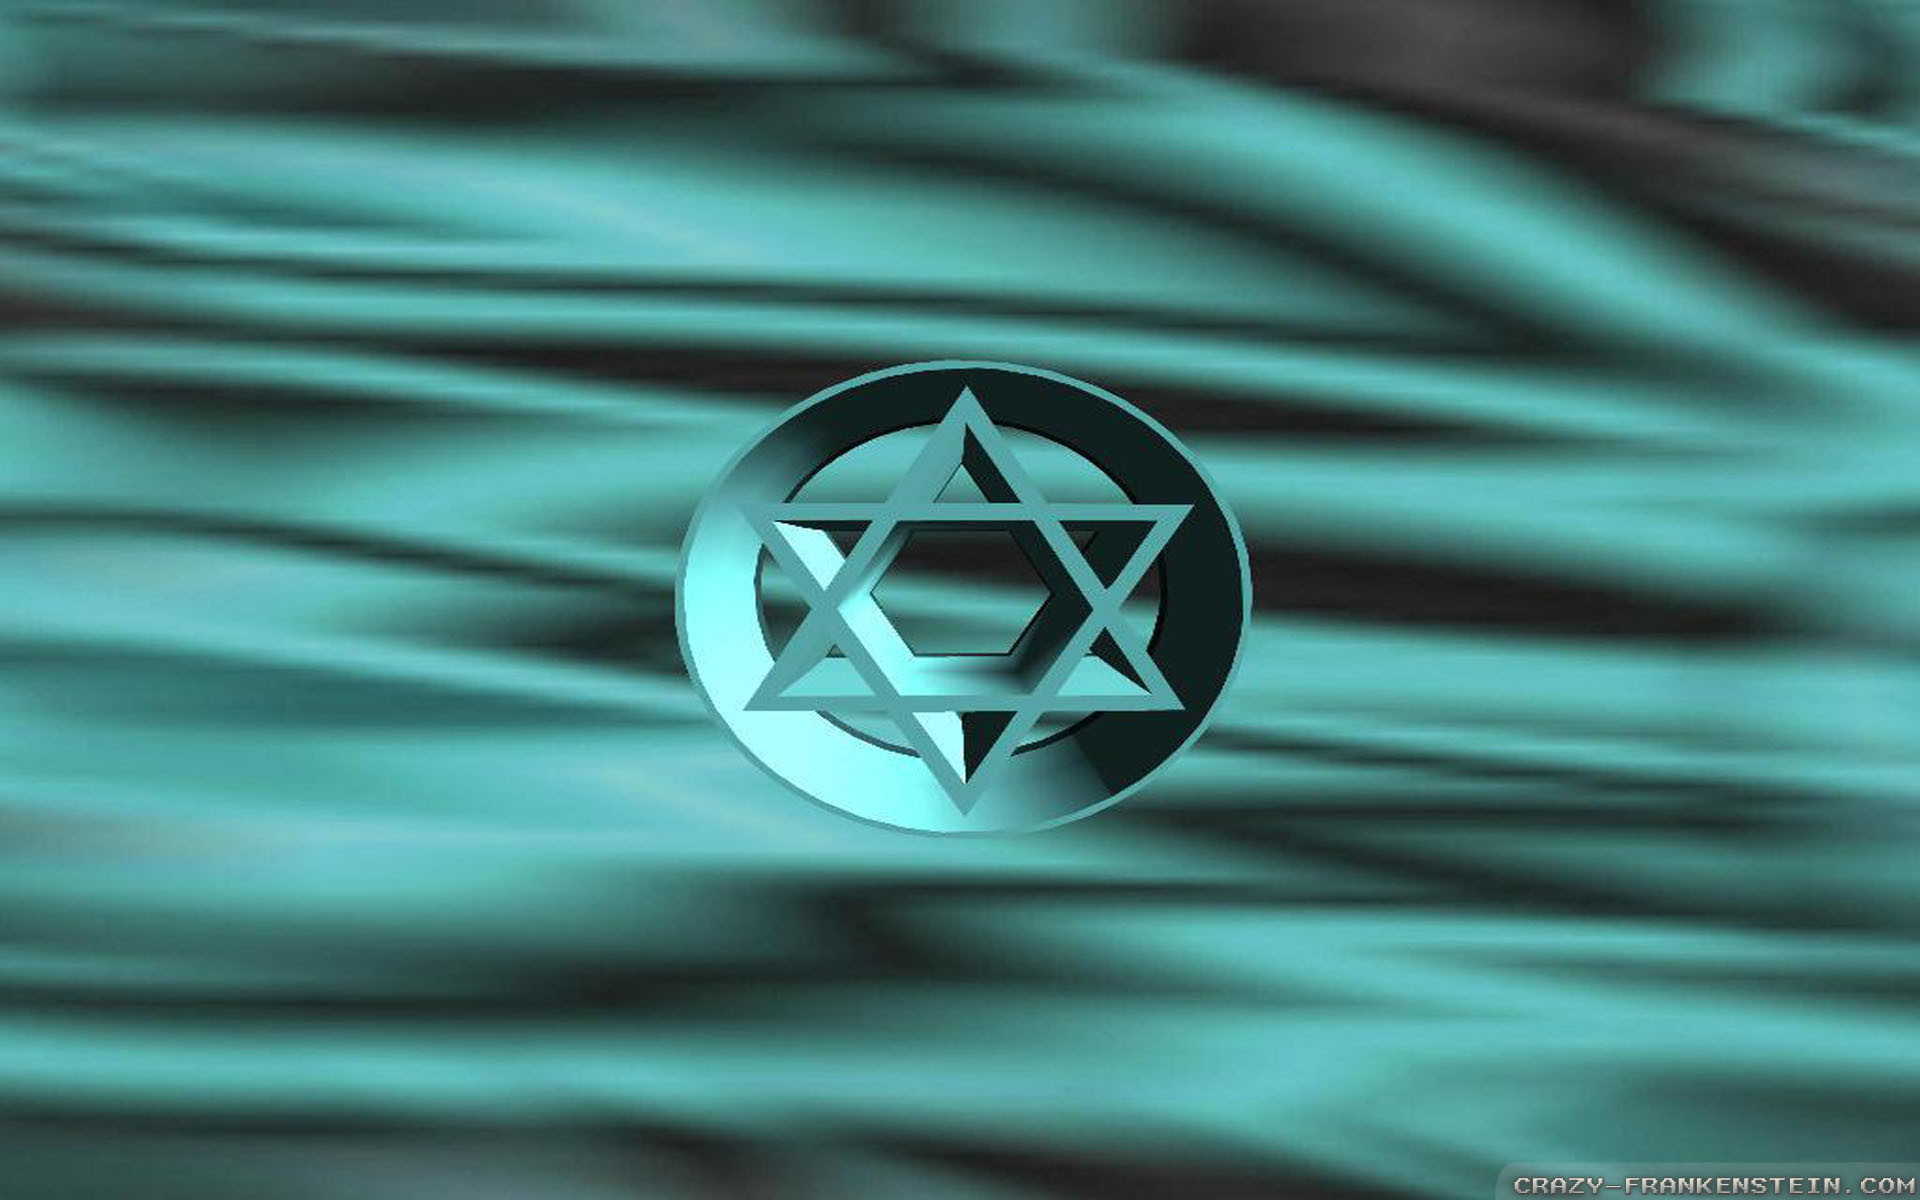 1920x1200 Wallpaper: Religious Jewish wallpapers. Resolution: 1024x768 | 1280x1024 |  1600x1200. Widescreen Res: 1440x900 | 1680x1050 |